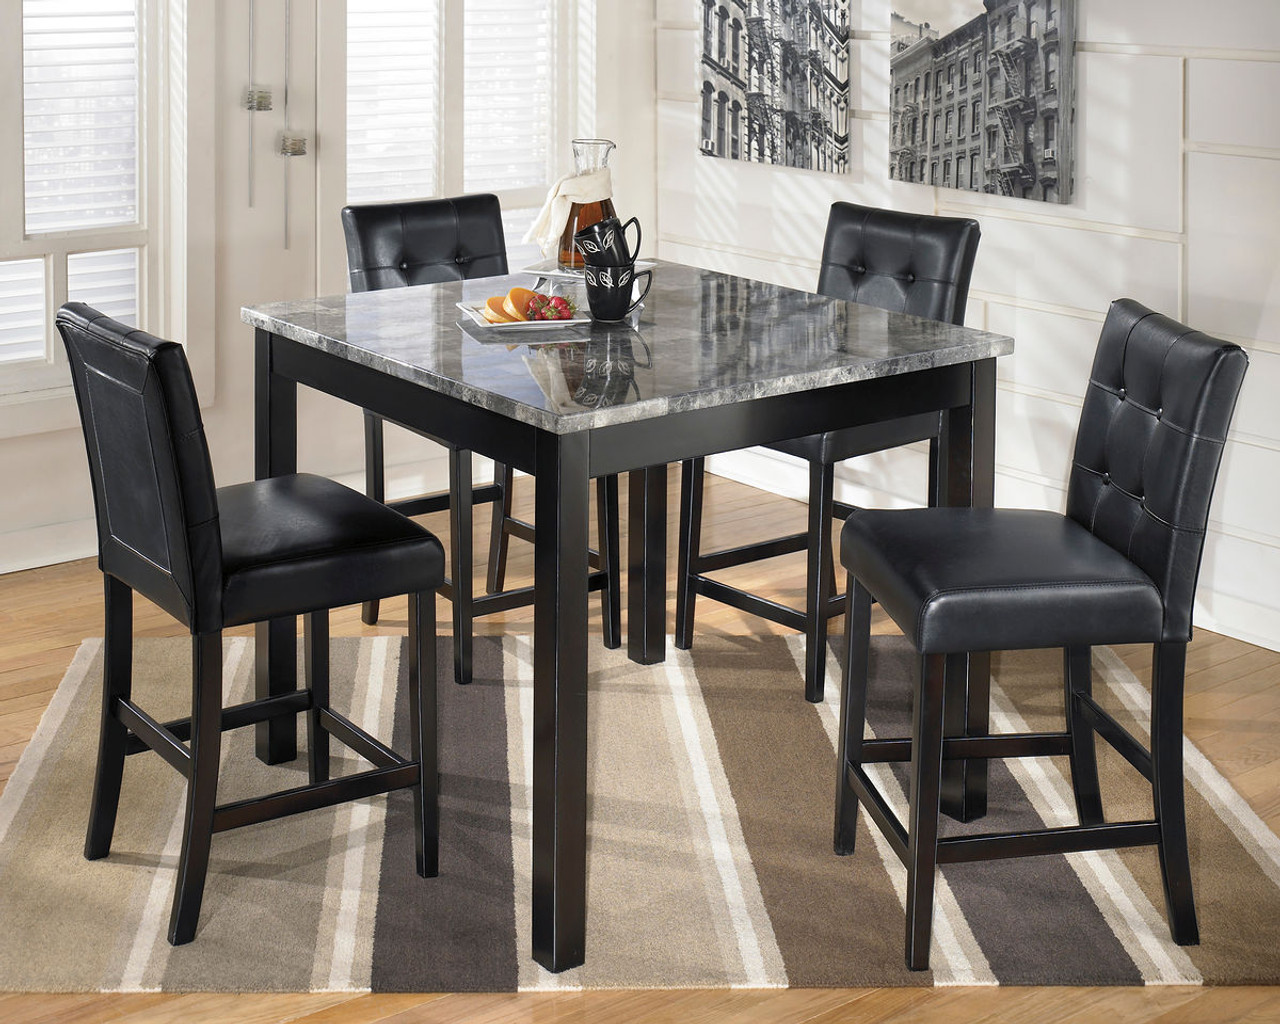 Rent To Own The Maysville Black Square Counter Table Set At Happy S Home Center Serving Tampa Fl And Surrounding Areas